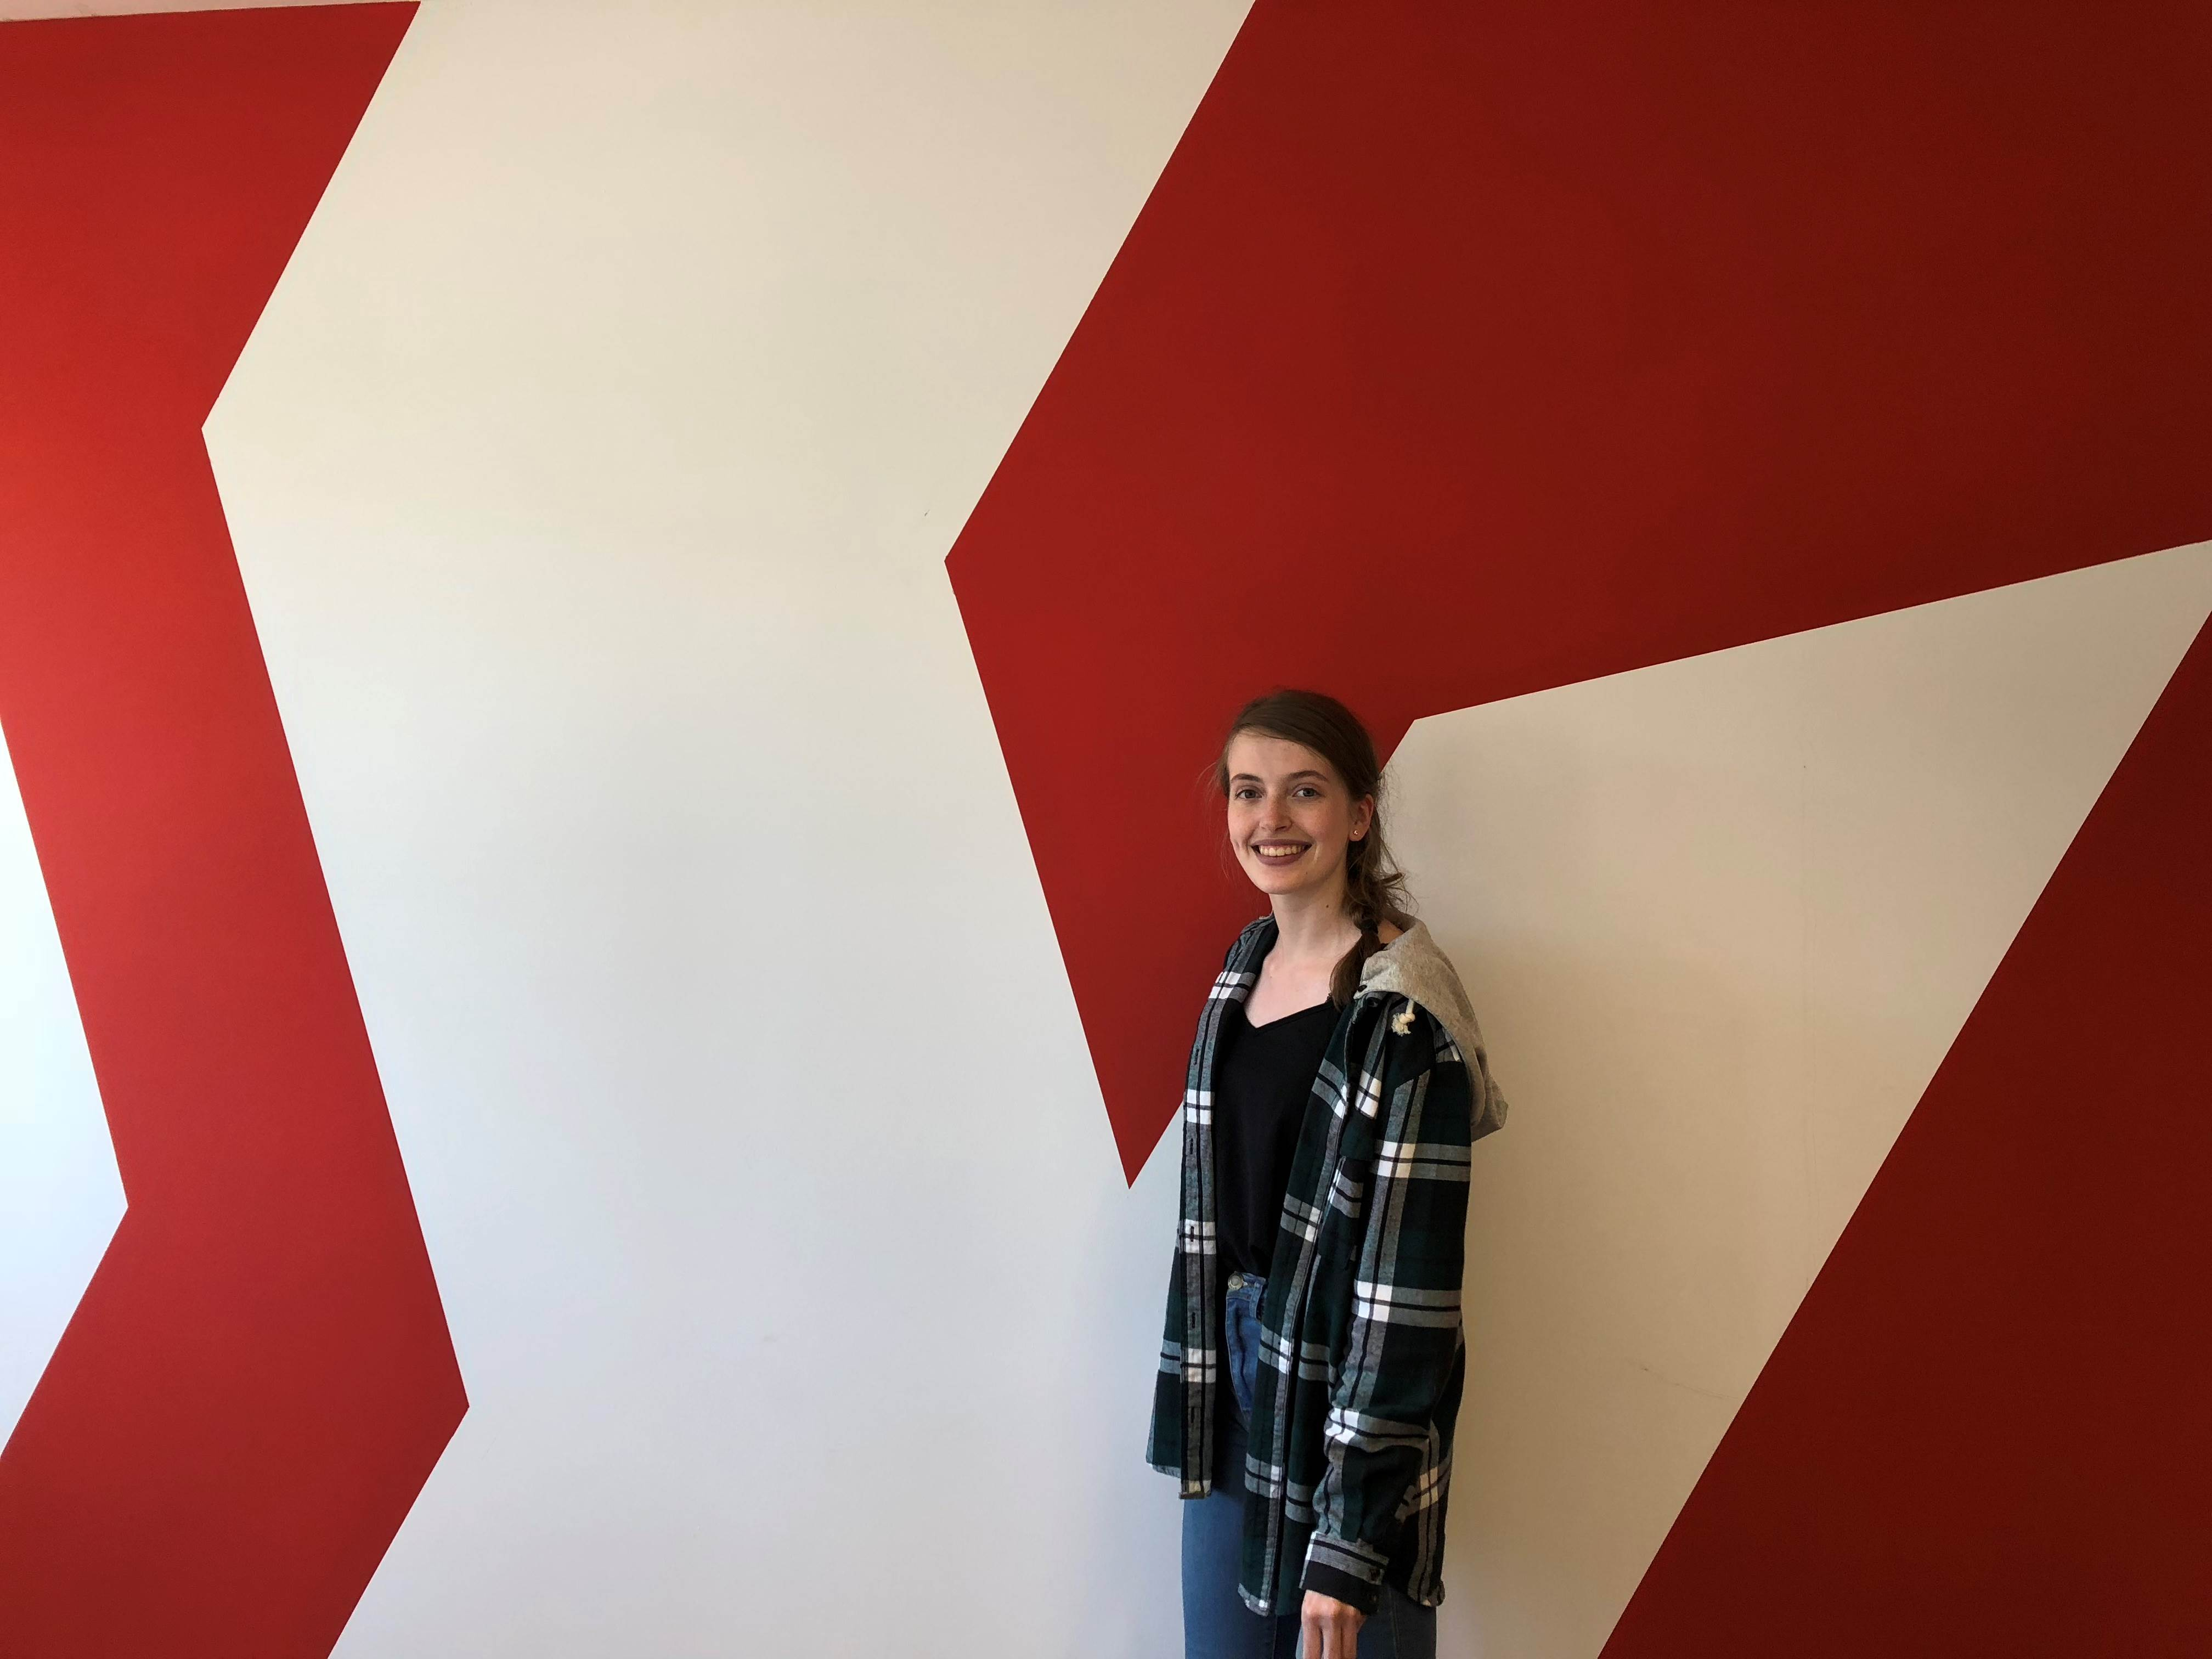 Welcome Jess - content creation intern joins the team